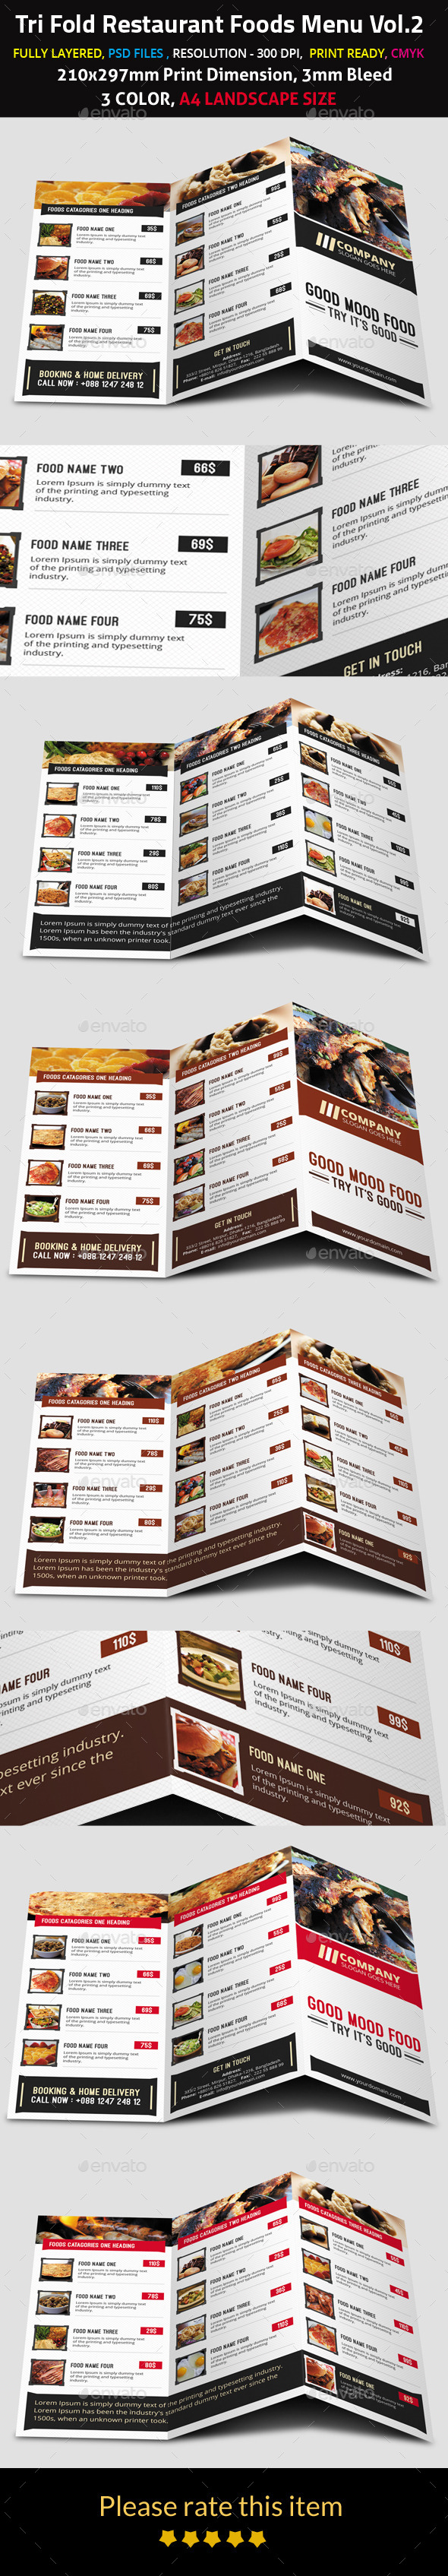 Tri Fold Restaurant Foods Menu Vol.2 - Food Menus Print Templates